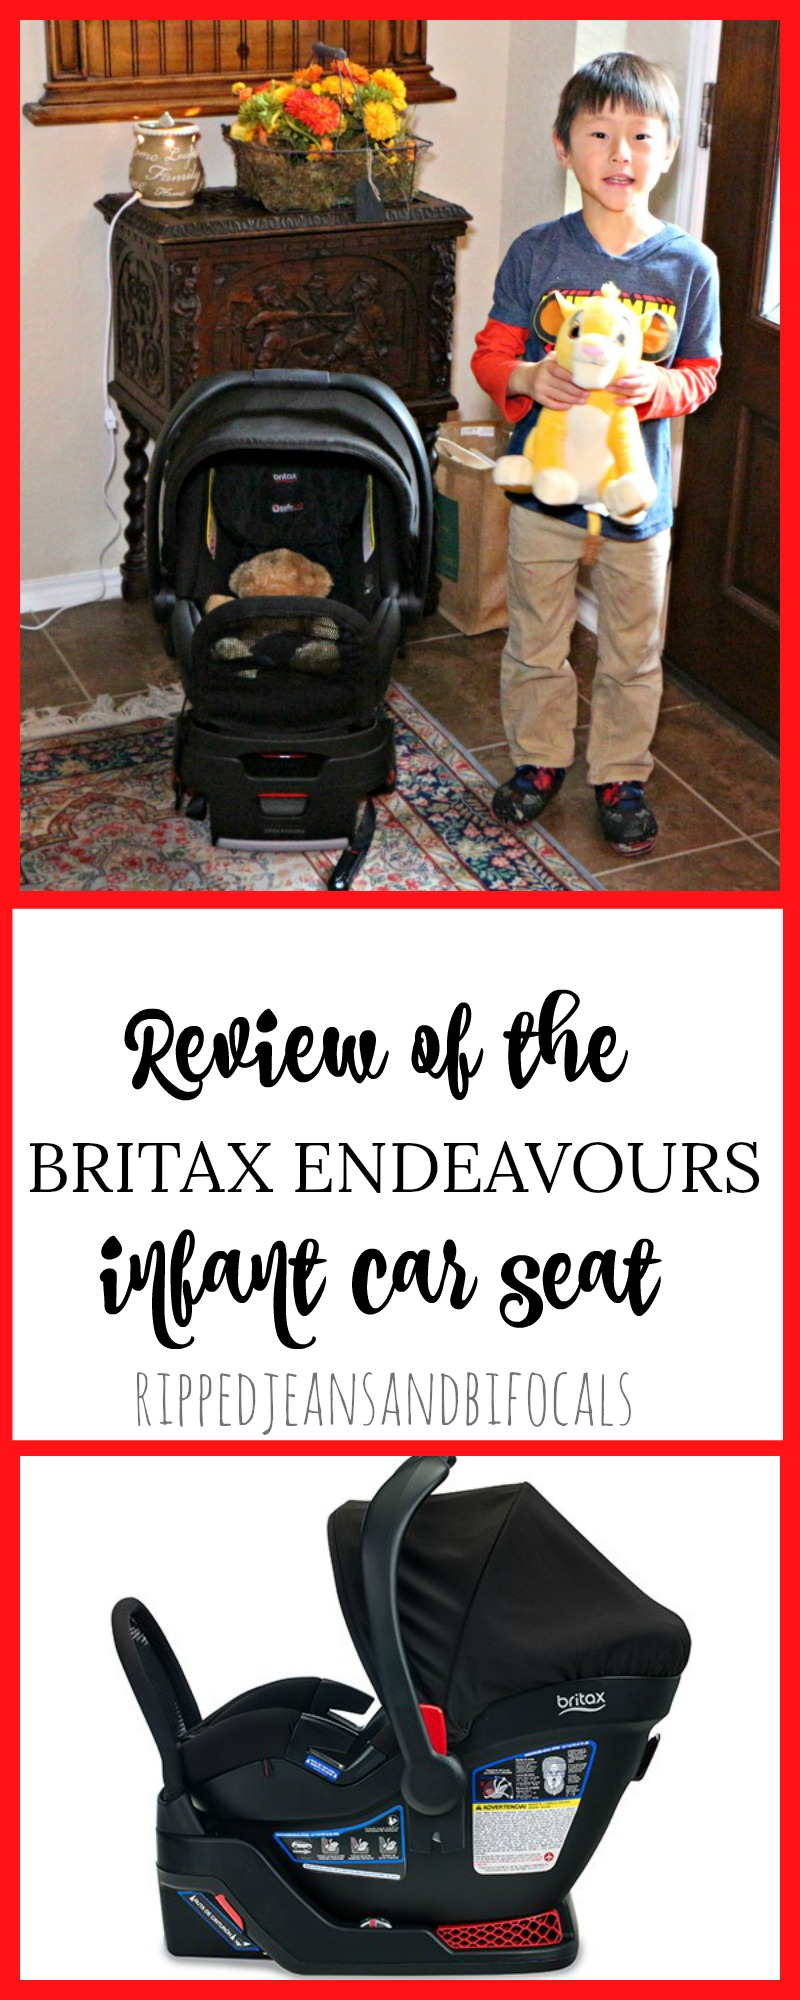 Review of the Britax Endeavours Infant Car Seat|Ripped Jeans and Bifocals